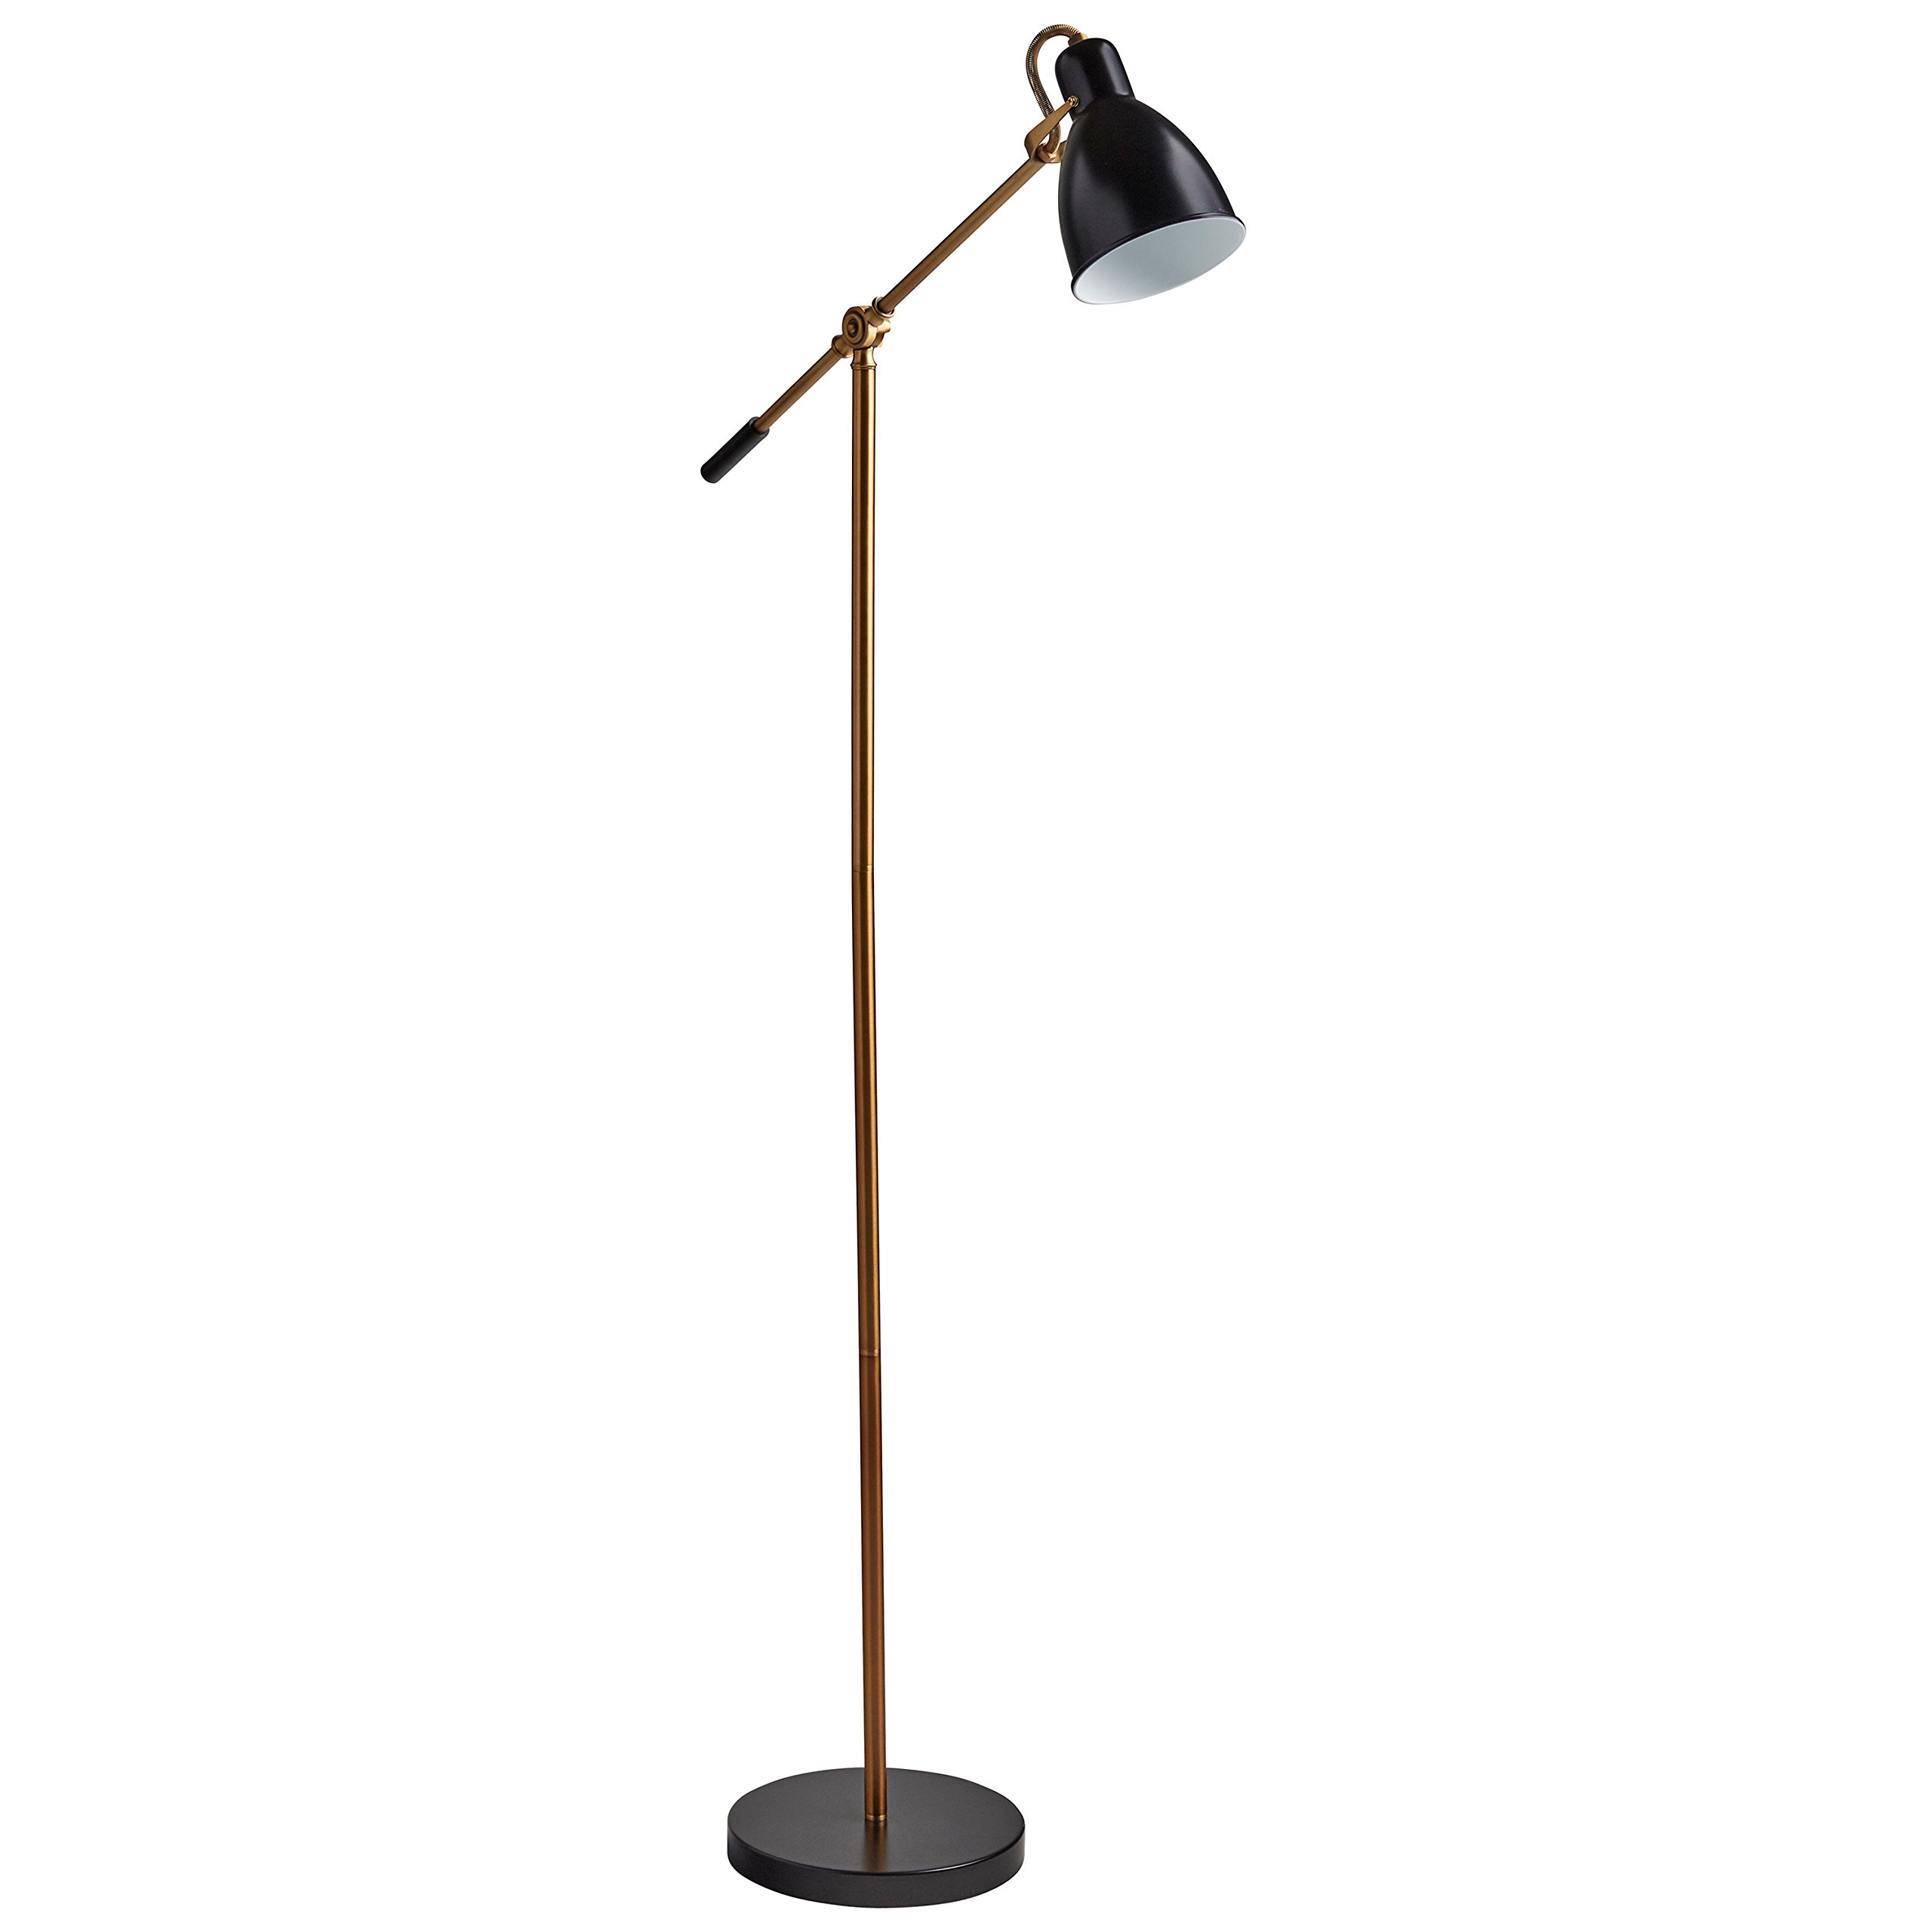 Rivet Caden Adjustable Task Floor Lamp with LED Bulb, 60''H, Black and Brass by Rivet (Image #3)